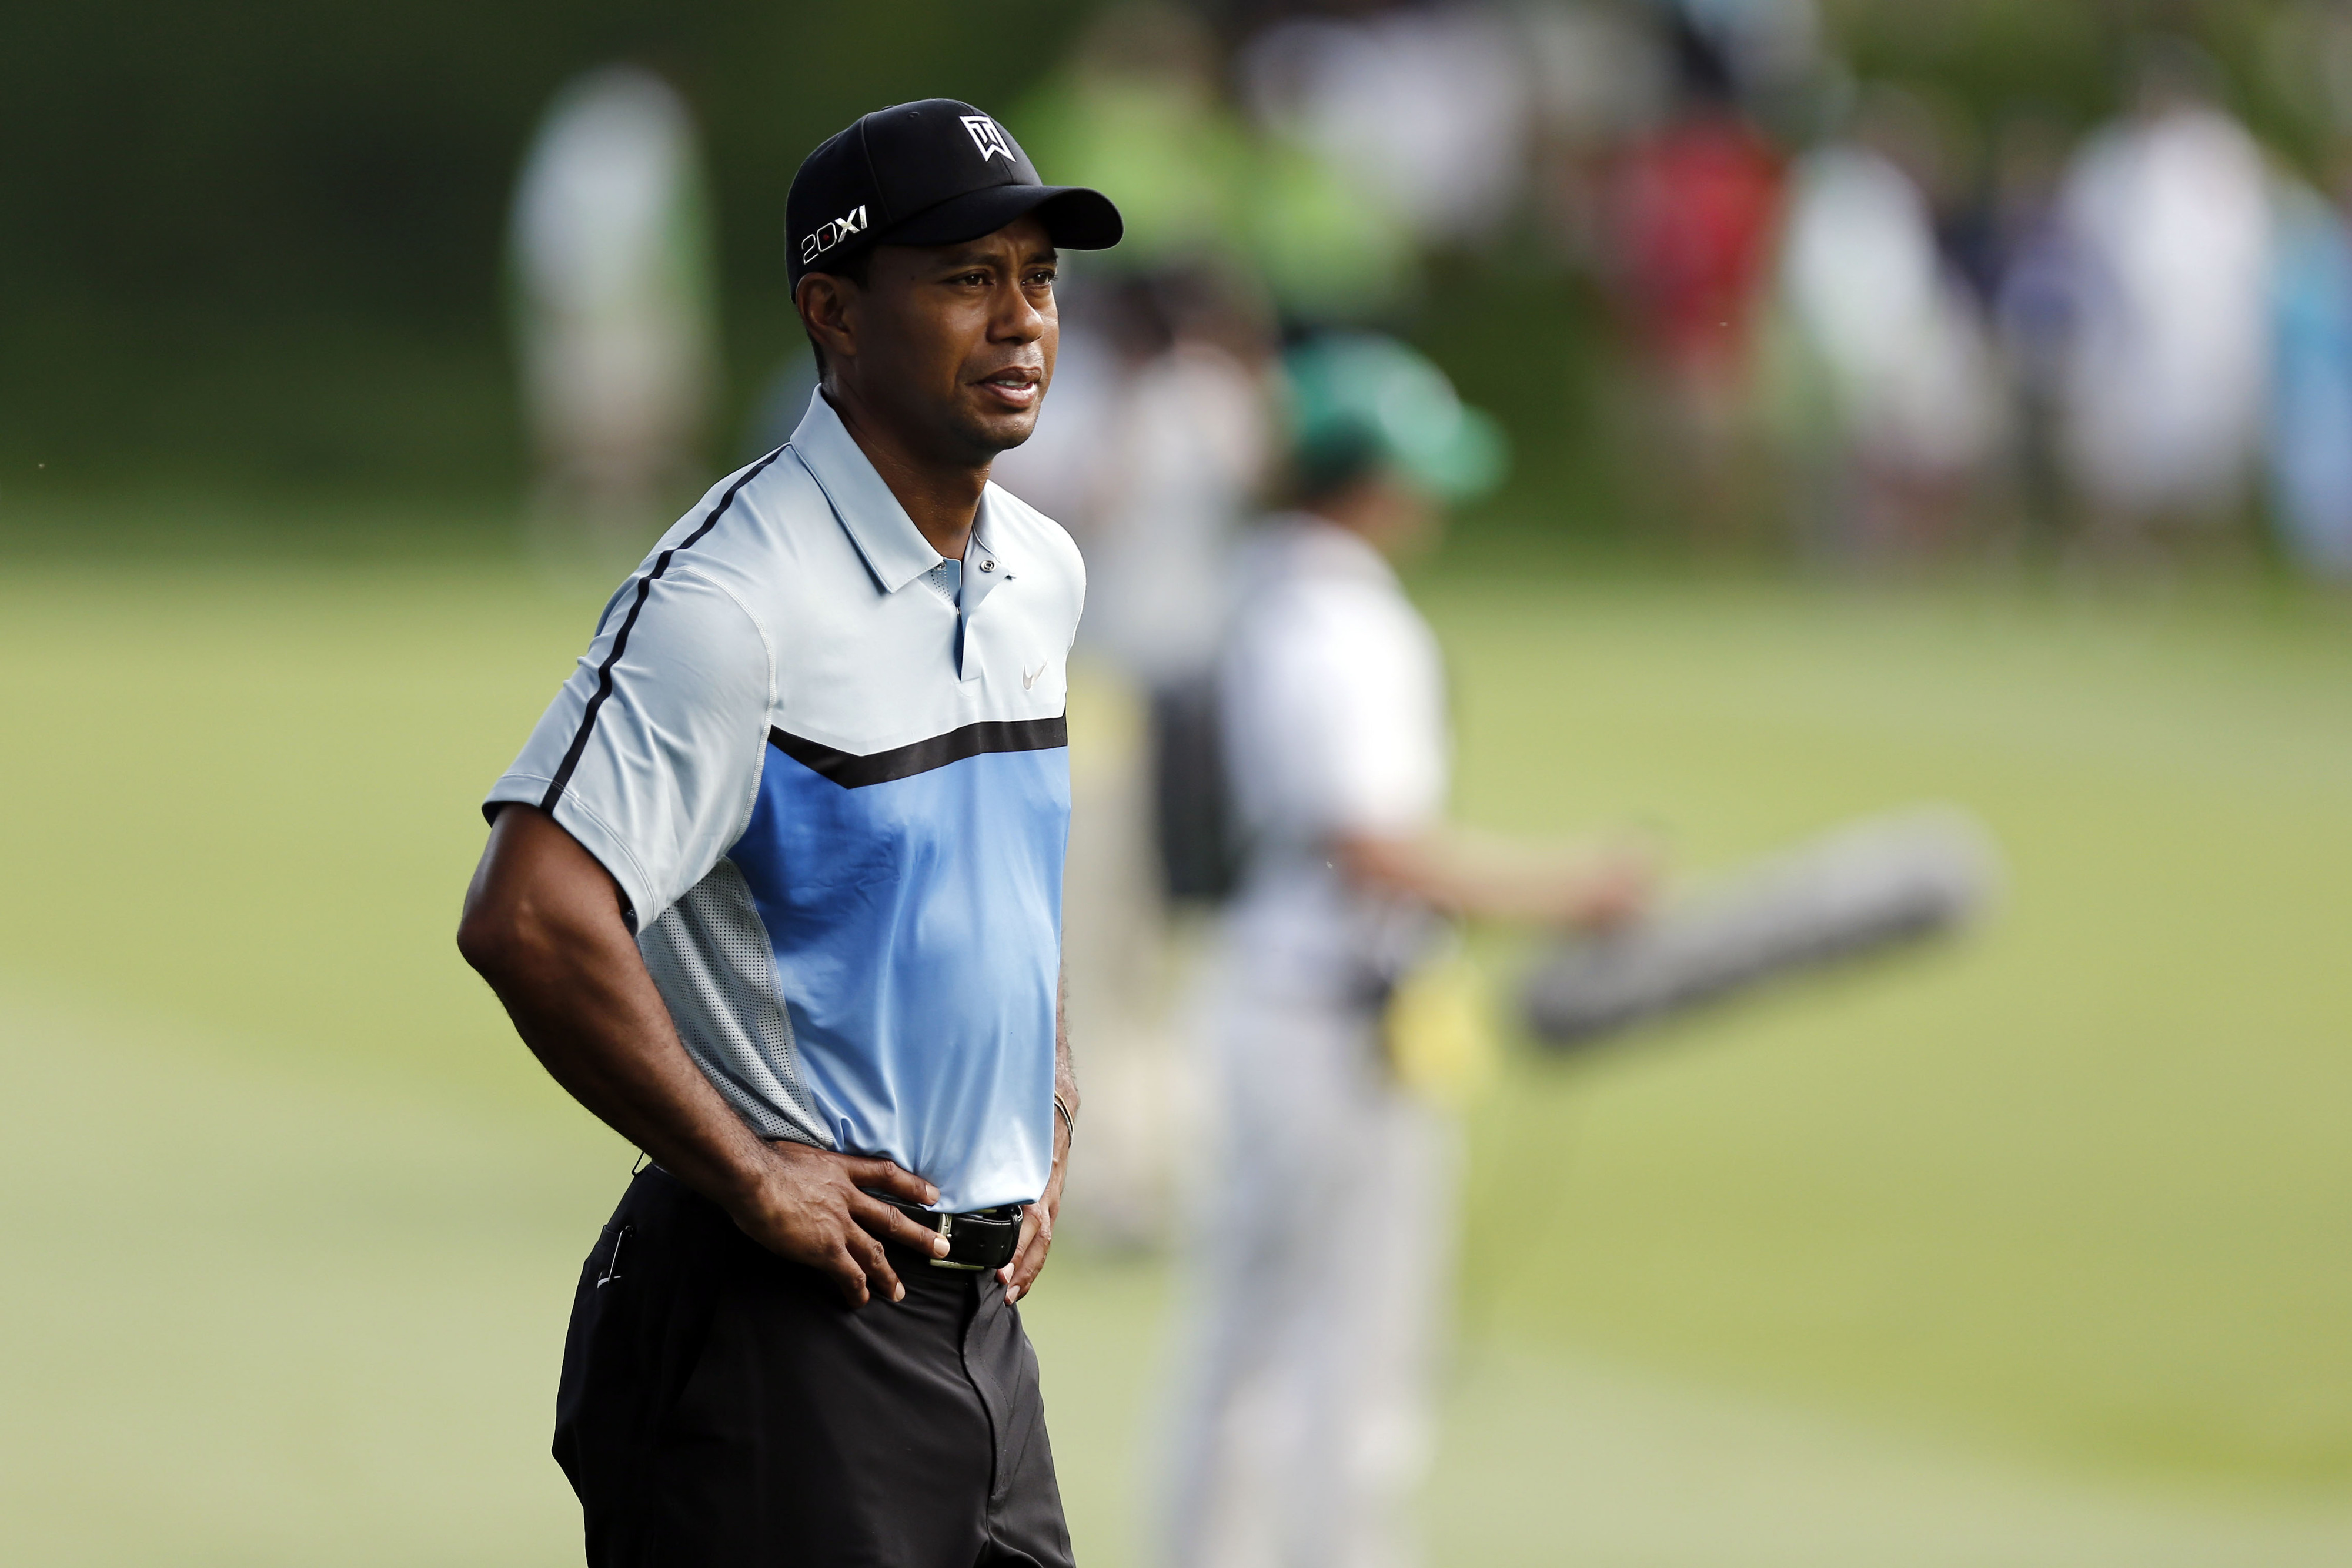 2013 PGA Championship: Tiger Woods struggling early as others go low